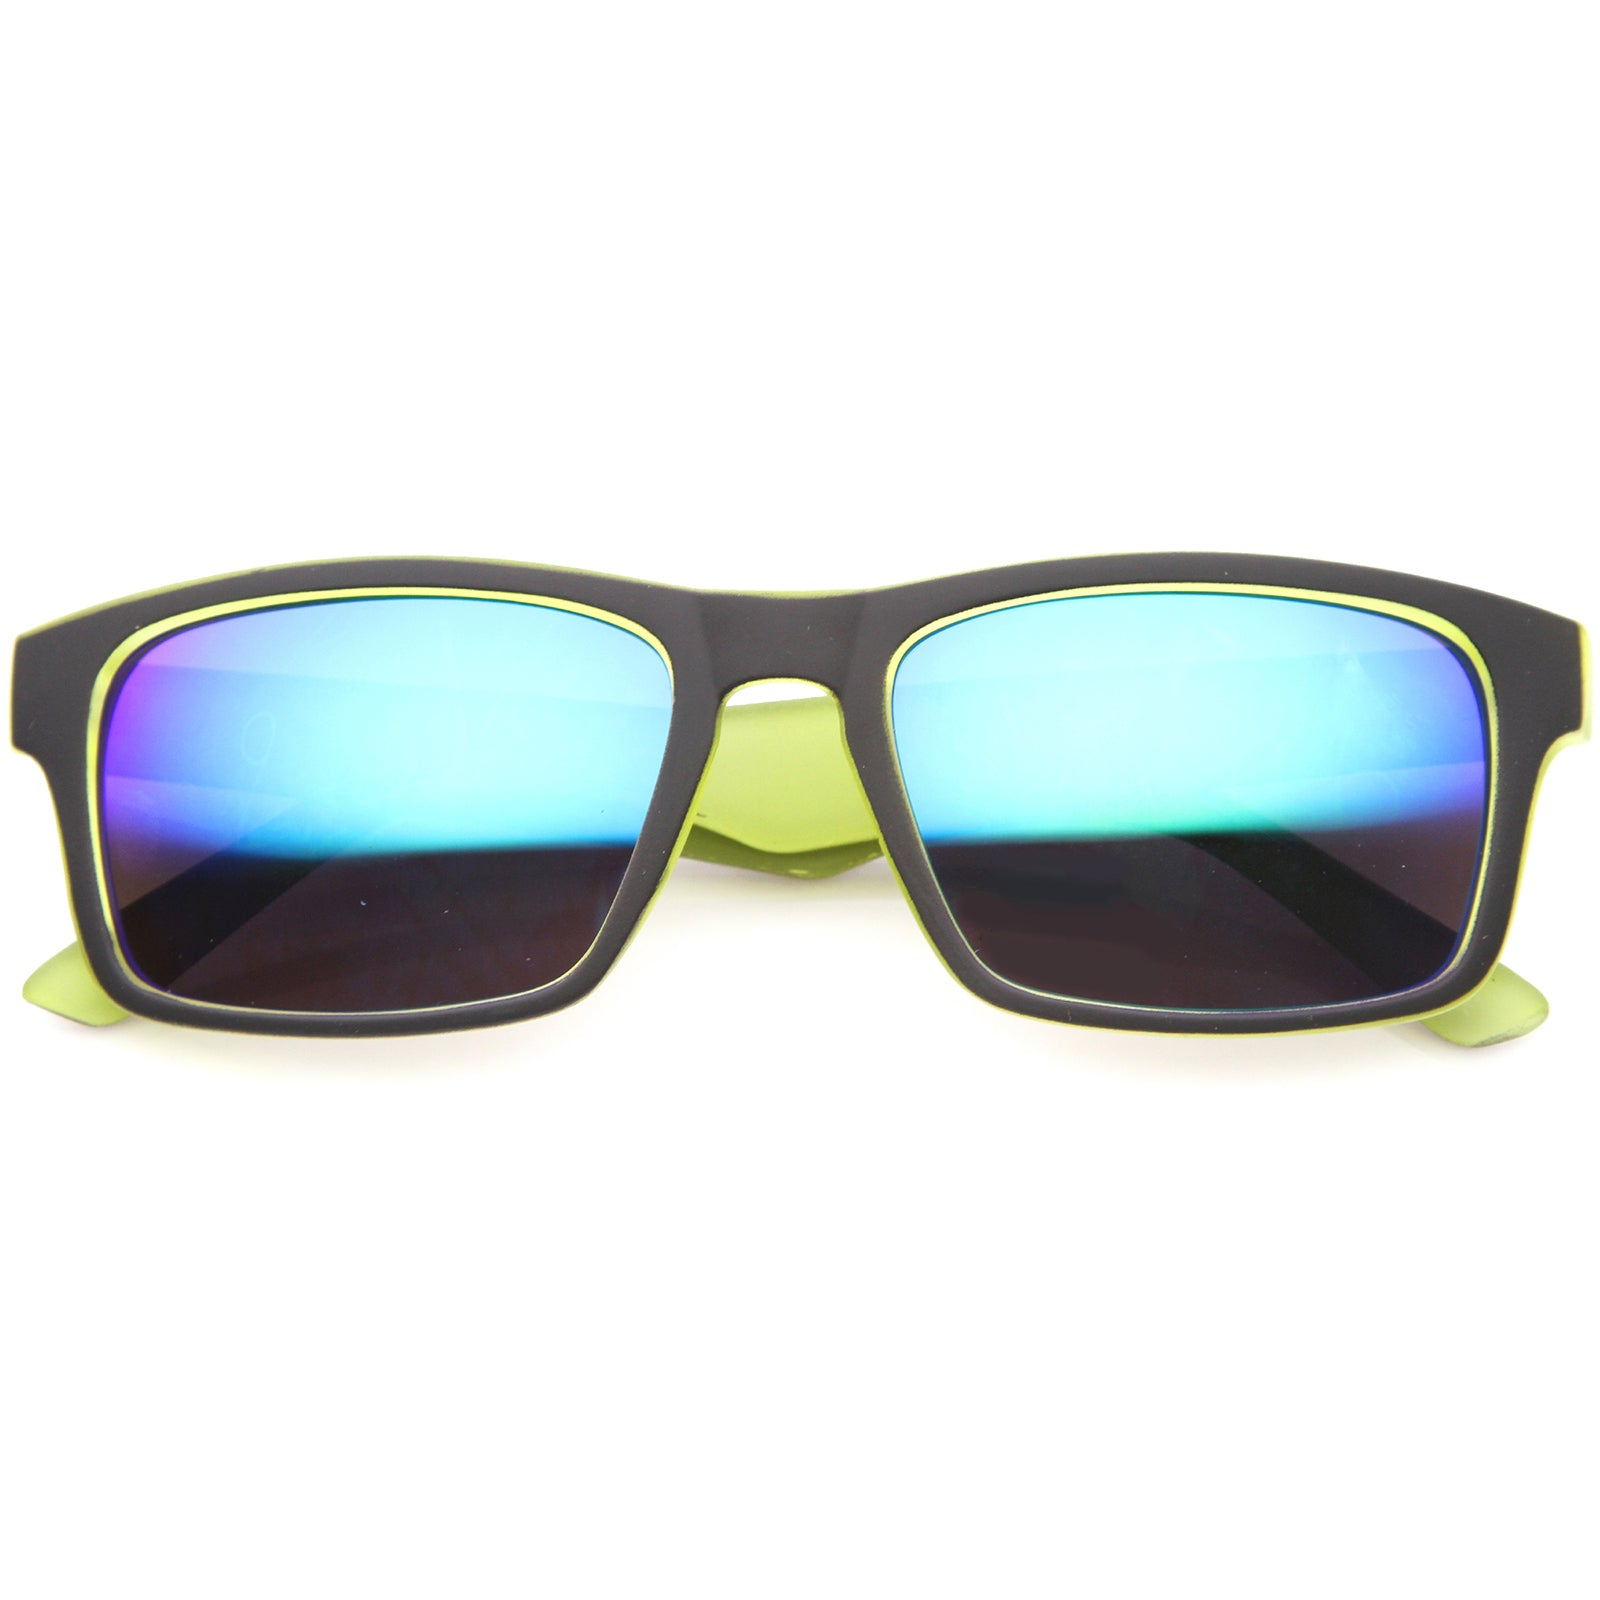 Mens Sport Sunglasses With UV400 Protected Mirrored Lens - sunglass.la - 13